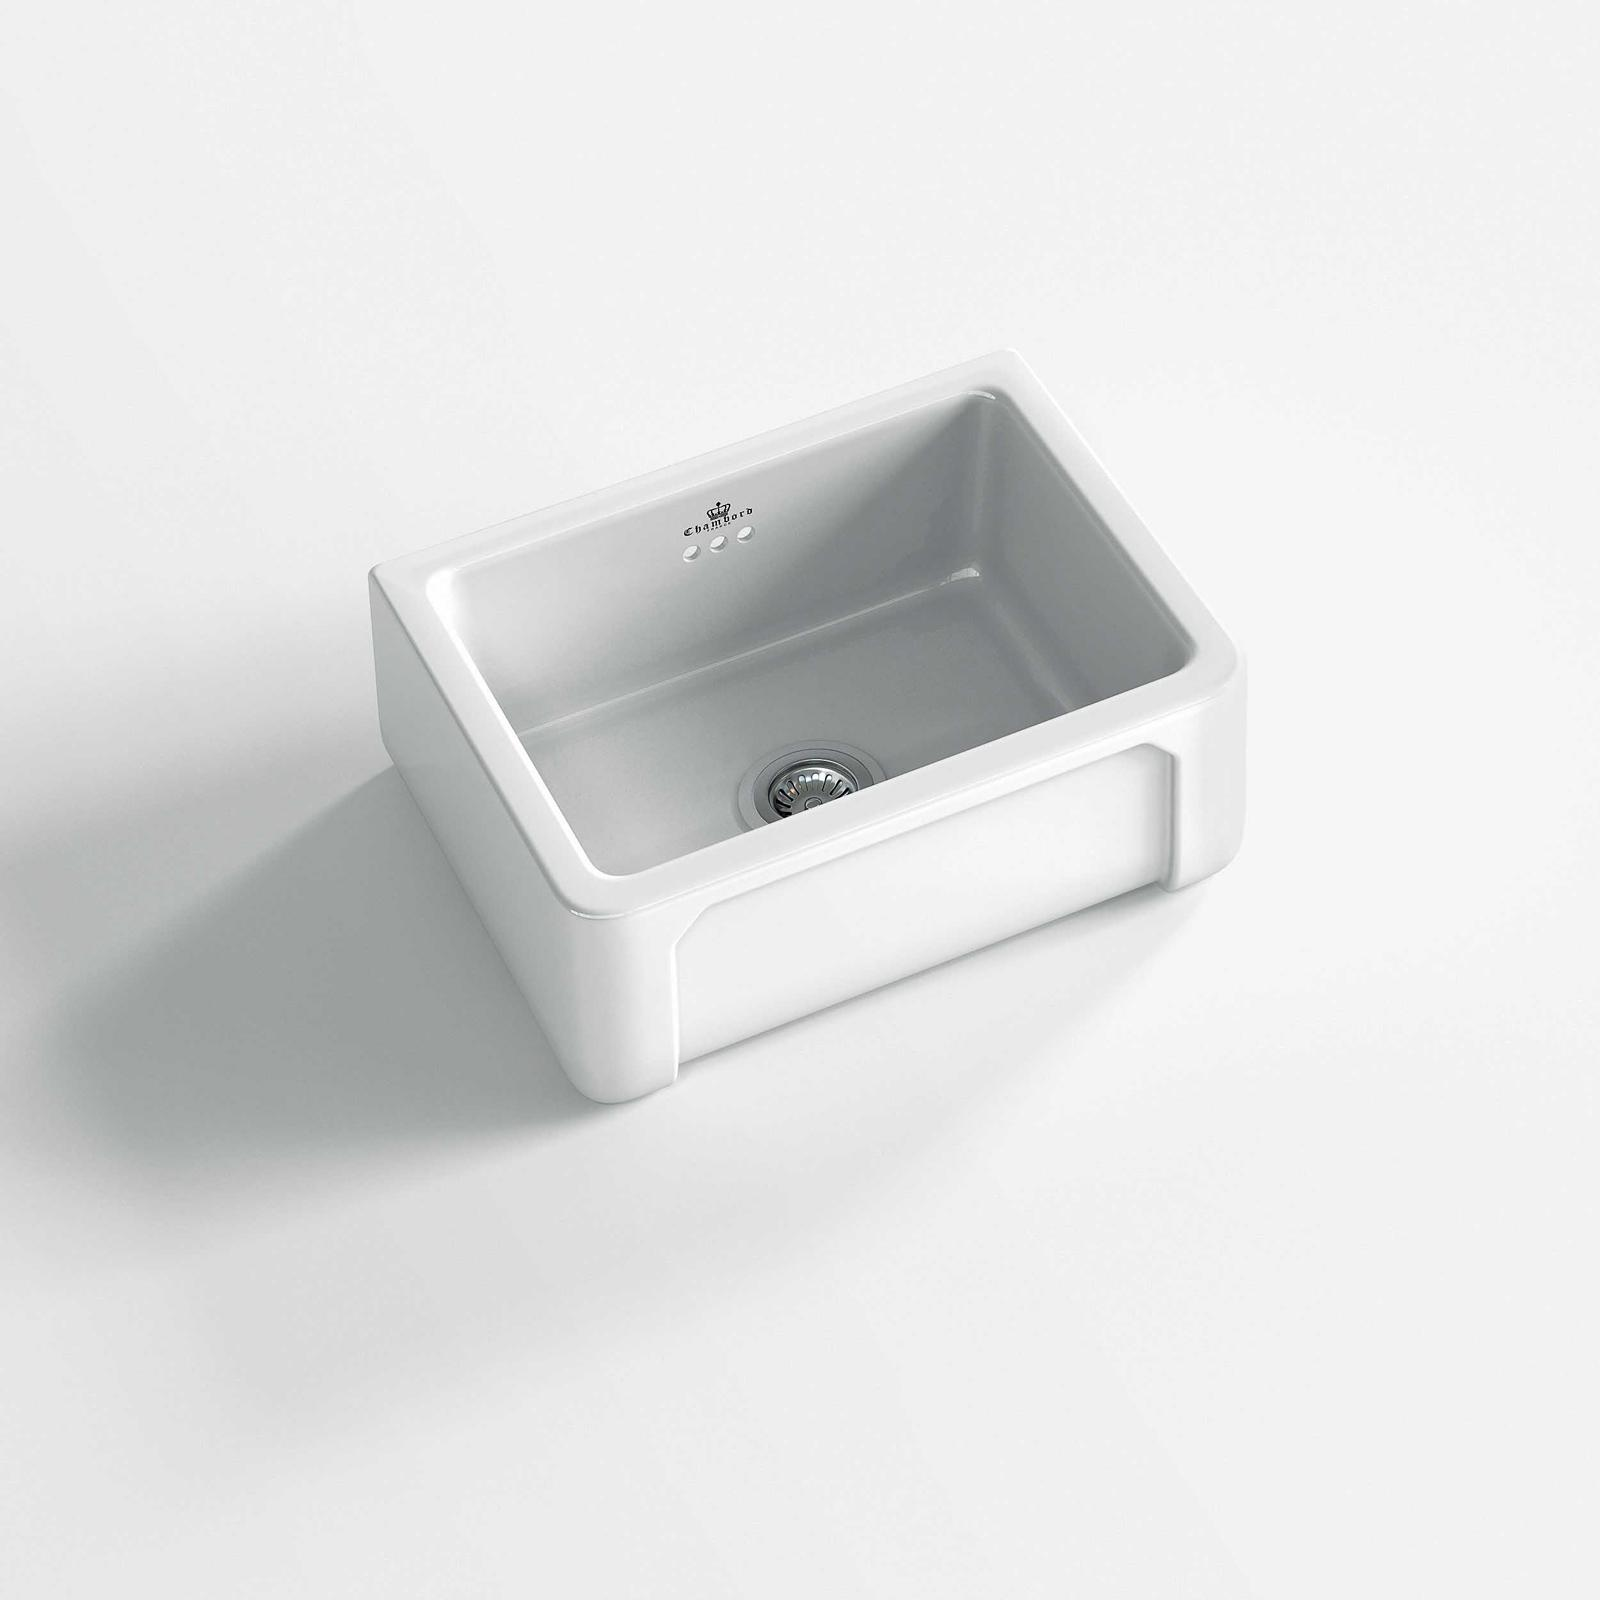 High-quality sink Henri I - single bowl, ceramic